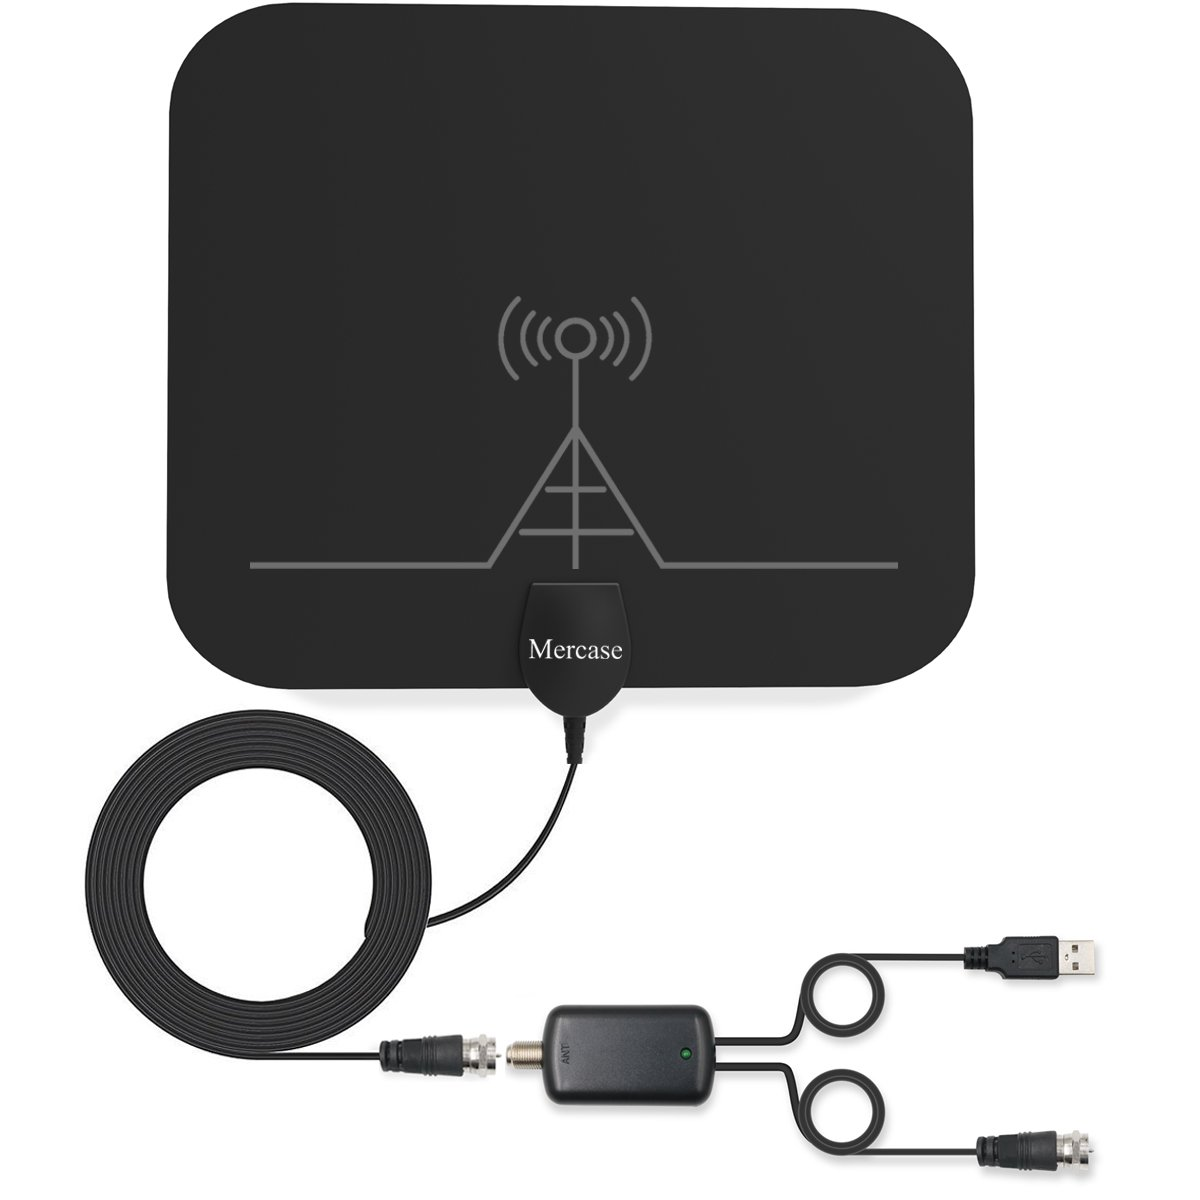 TV Antenna, Mercase 60 Miles Range Indoor High Reception Channels Smart TV Antenna for Digital Television with Detachable Amplifier Signal Booster,13.2ft Coaxial Cable[4K 1080P Digital HDTV Freeview]